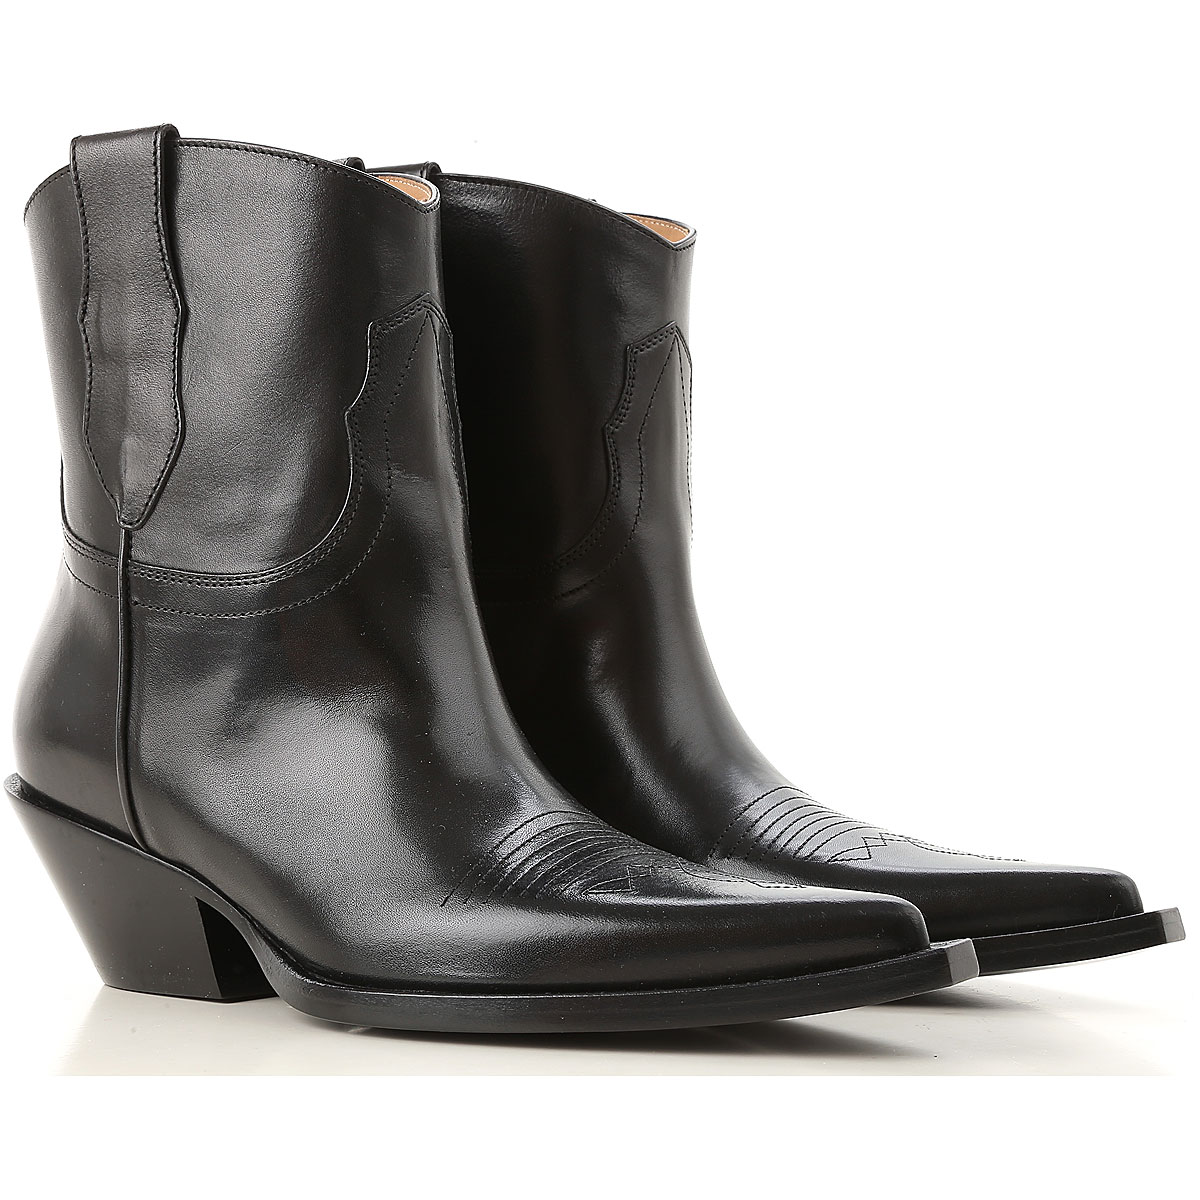 Image of Maison Martin Margiela Boots for Women, Booties, Black, Leather, 2017, 10 6 7 8